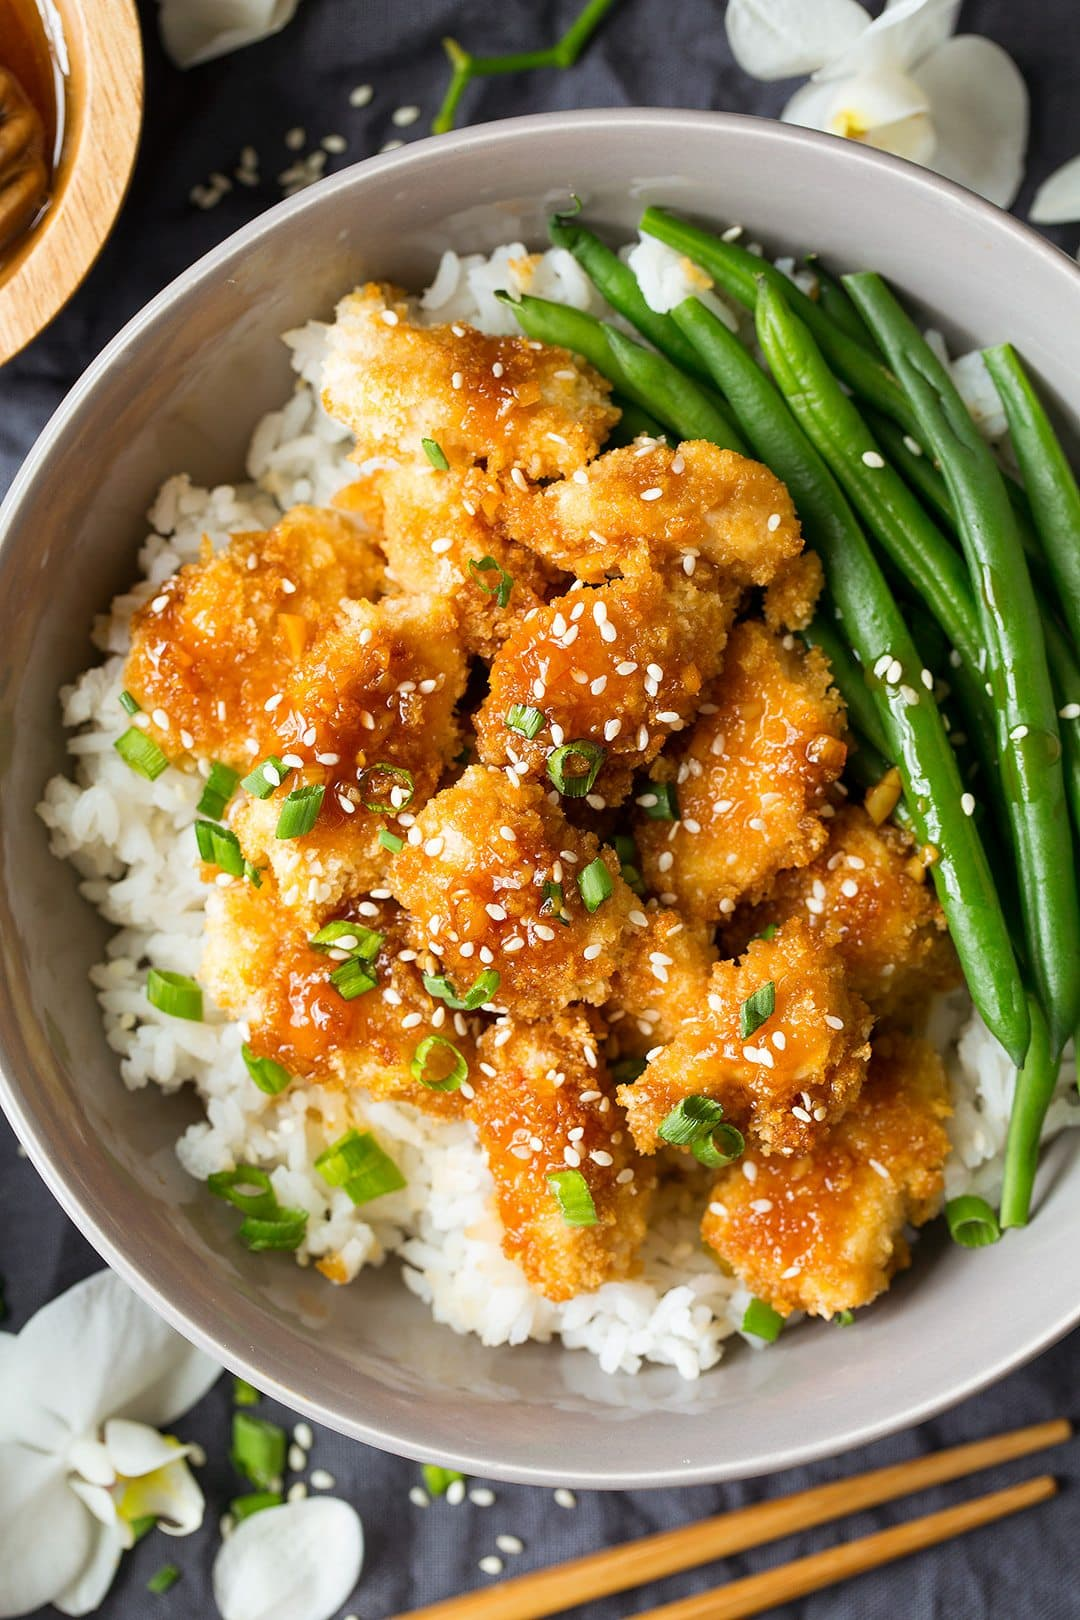 chicken honey garlic baked recipes cooking rice classy oven pan recipe breasts follow delicious cookingclassy skinless print